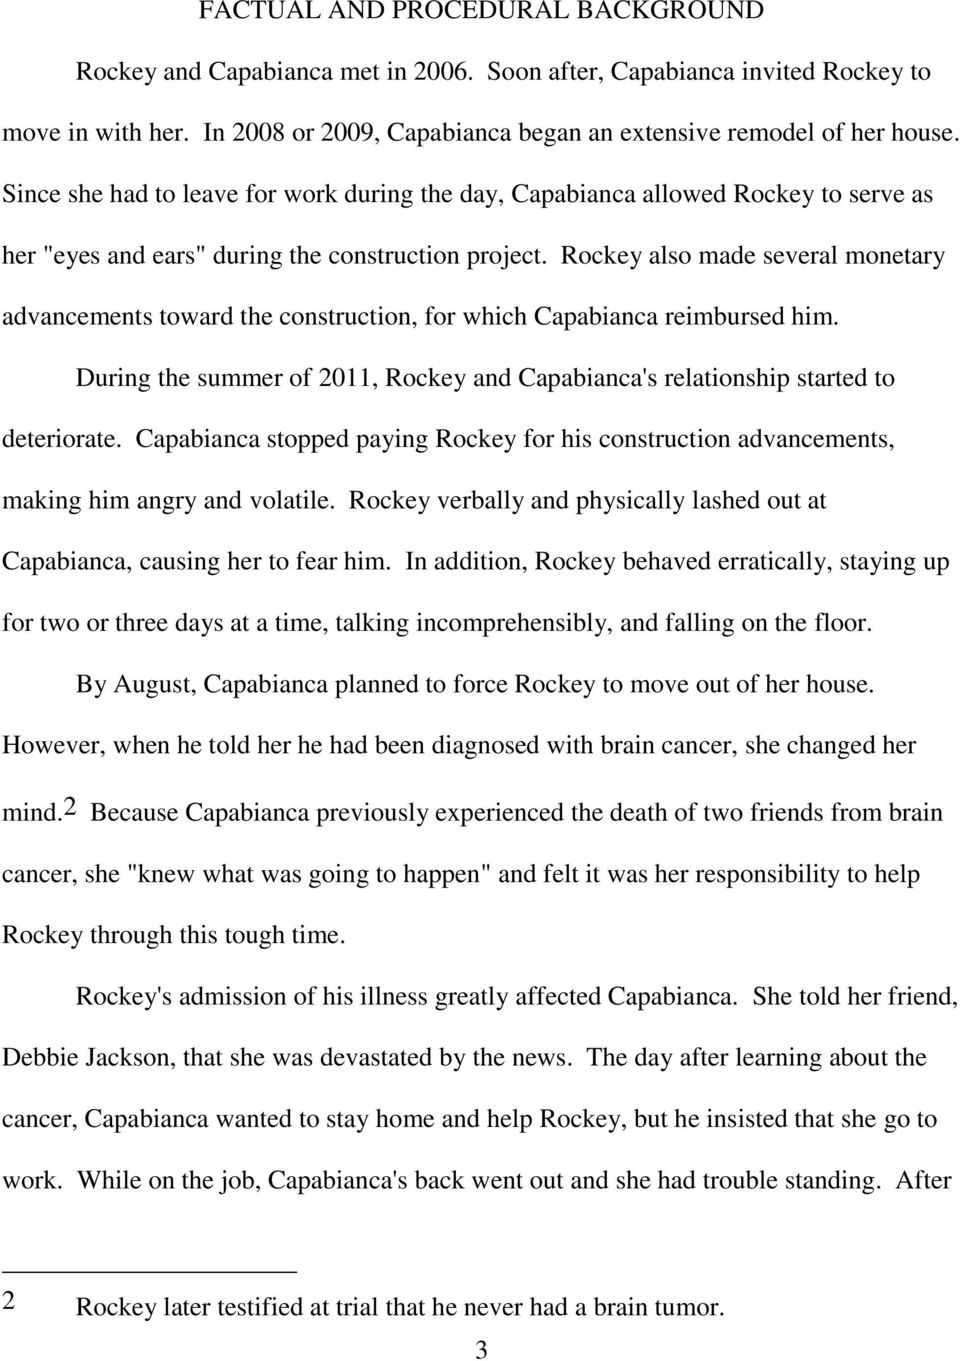 Rockey also made several monetary advancements toward the construction, for which Capabianca reimbursed him. During the summer of 2011, Rockey and Capabianca's relationship started to deteriorate.